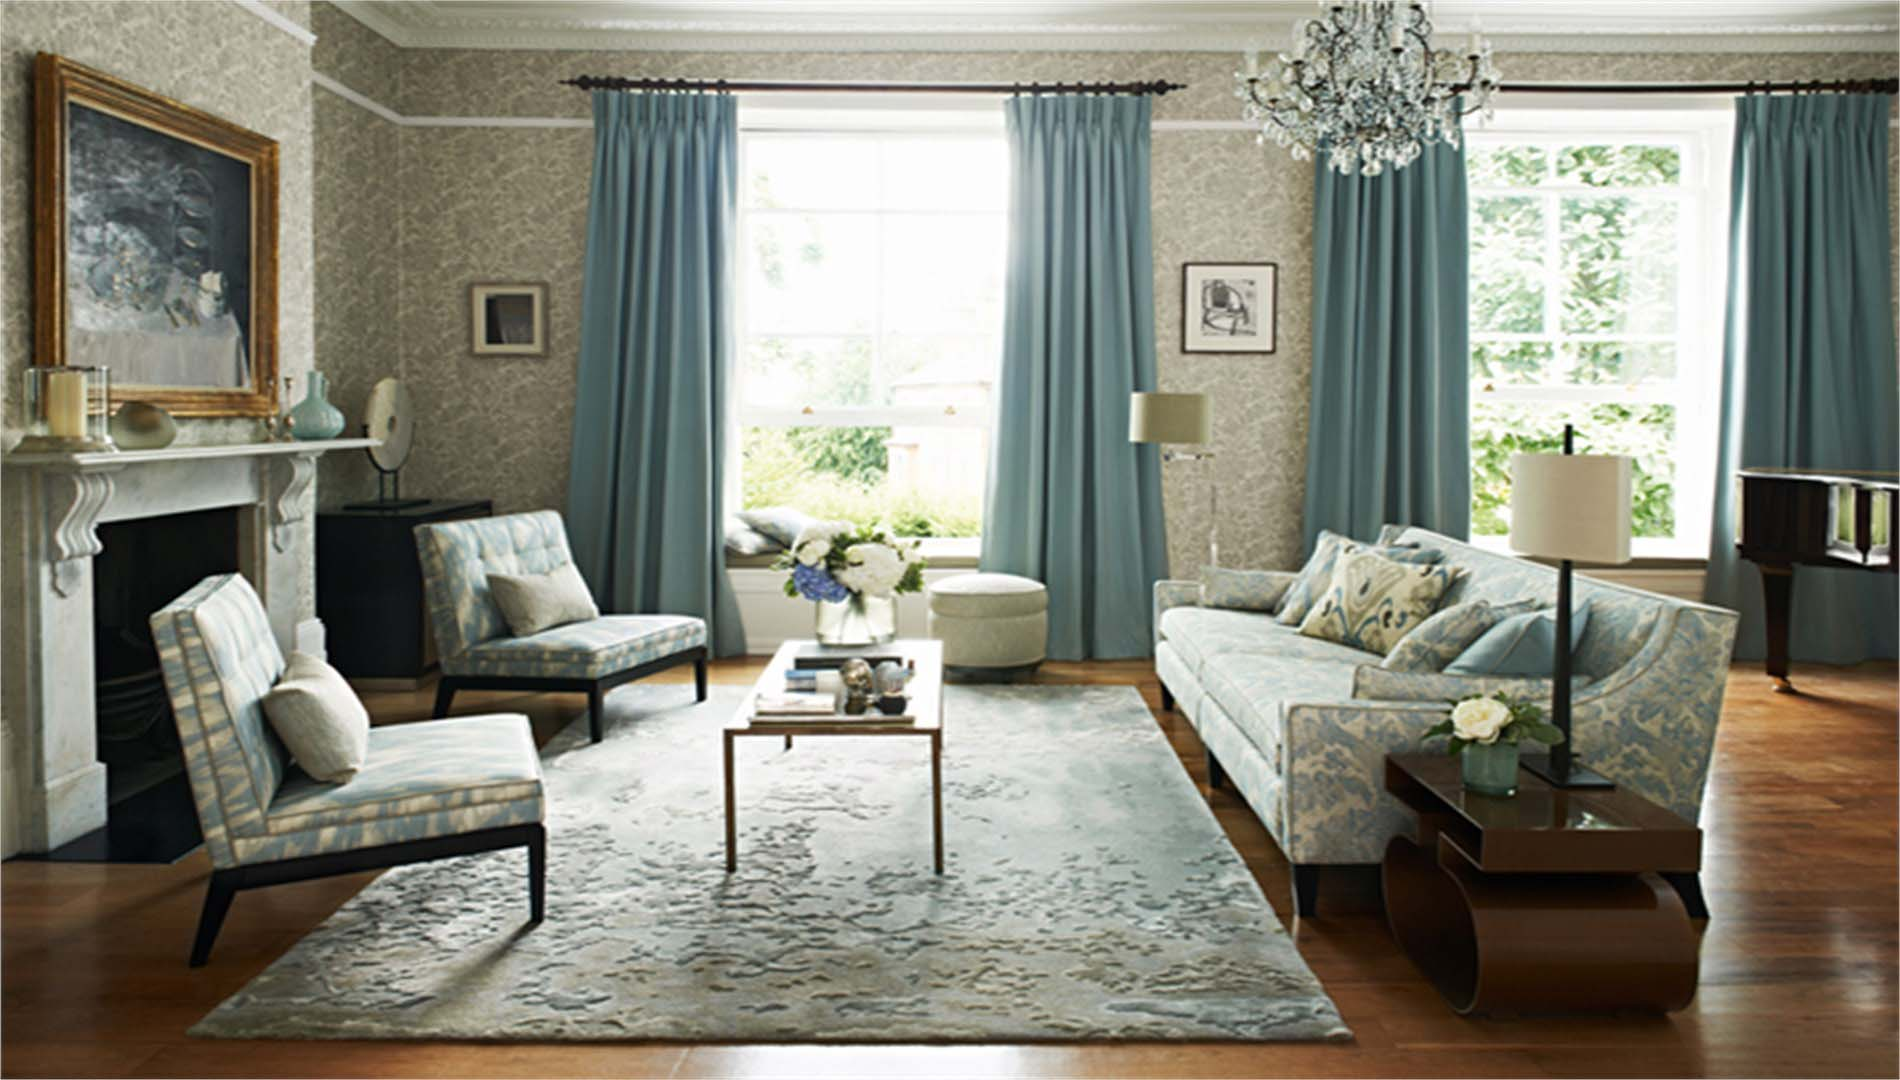 Lounge room upholstery and accessories